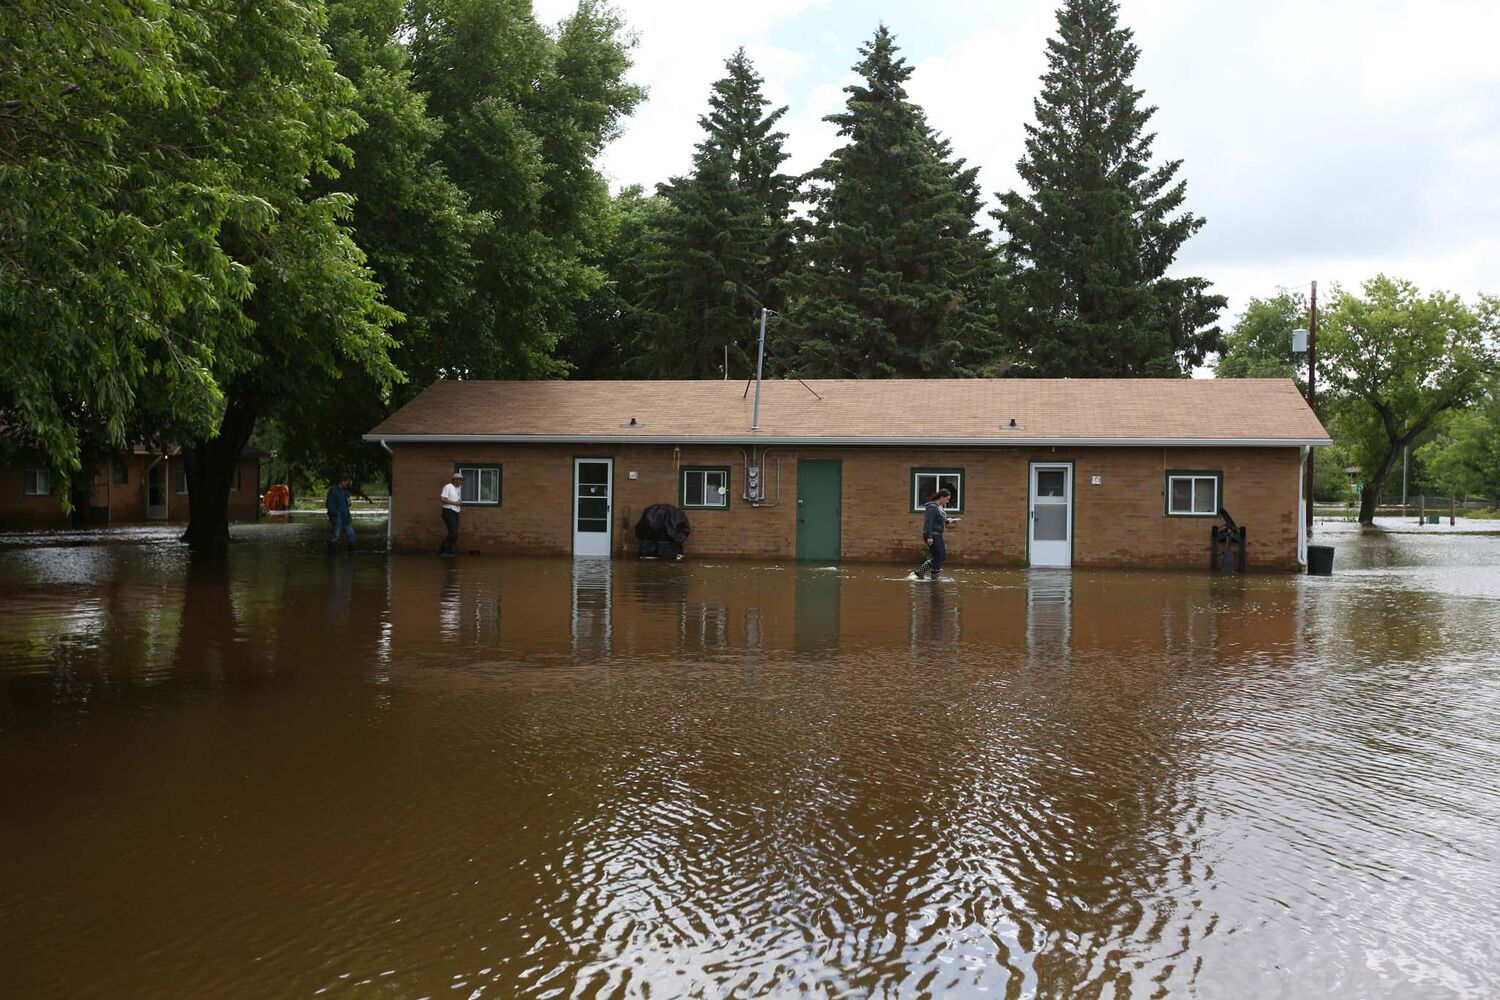 Apartments in Virden sit surrounded by water on Monday after the rising Gopher Creek inundated the building. (Tim Smith / Brandon Sun)